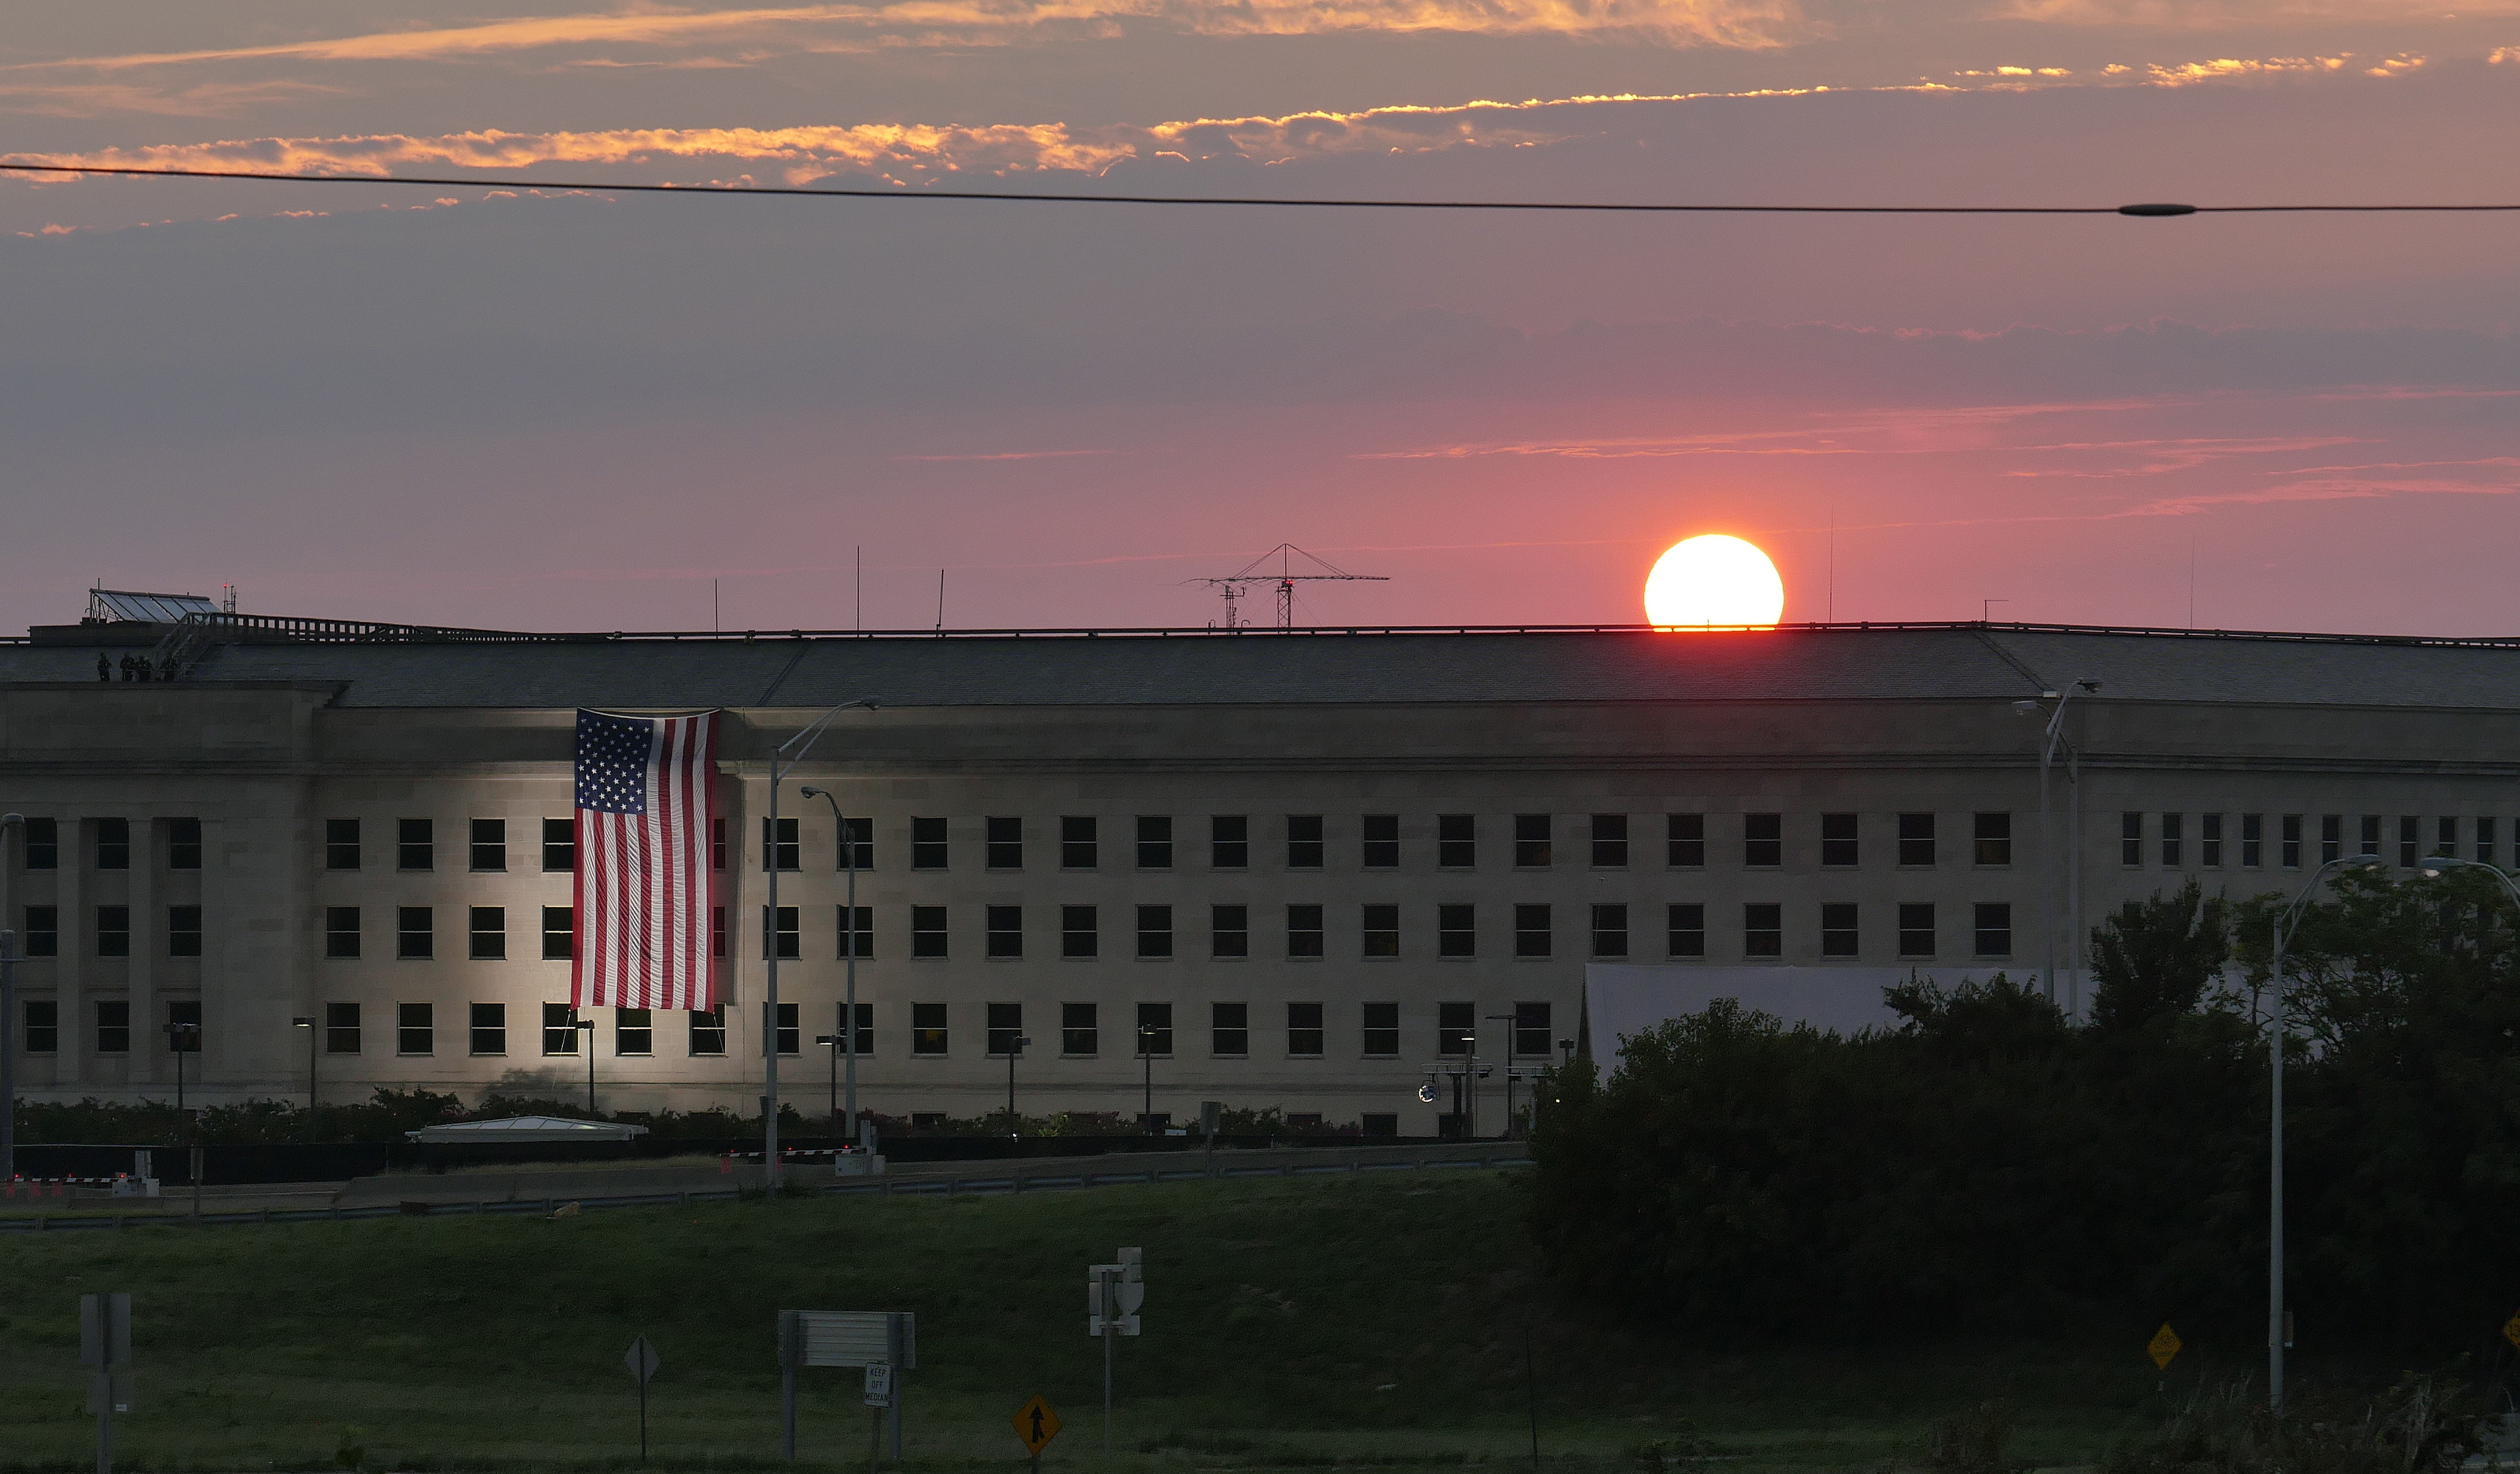 ARLINGTON, VA - SEPTEMBER 11: In this U.S. Navy handout, sunrise at the Pentagon prior to a ceremony to commemorate the 15th anniversary of the Sept. 11, 2001 terror attacks. The American flag is draped over the site of impact at the Pentagon. Photo by Damon J. Moritz